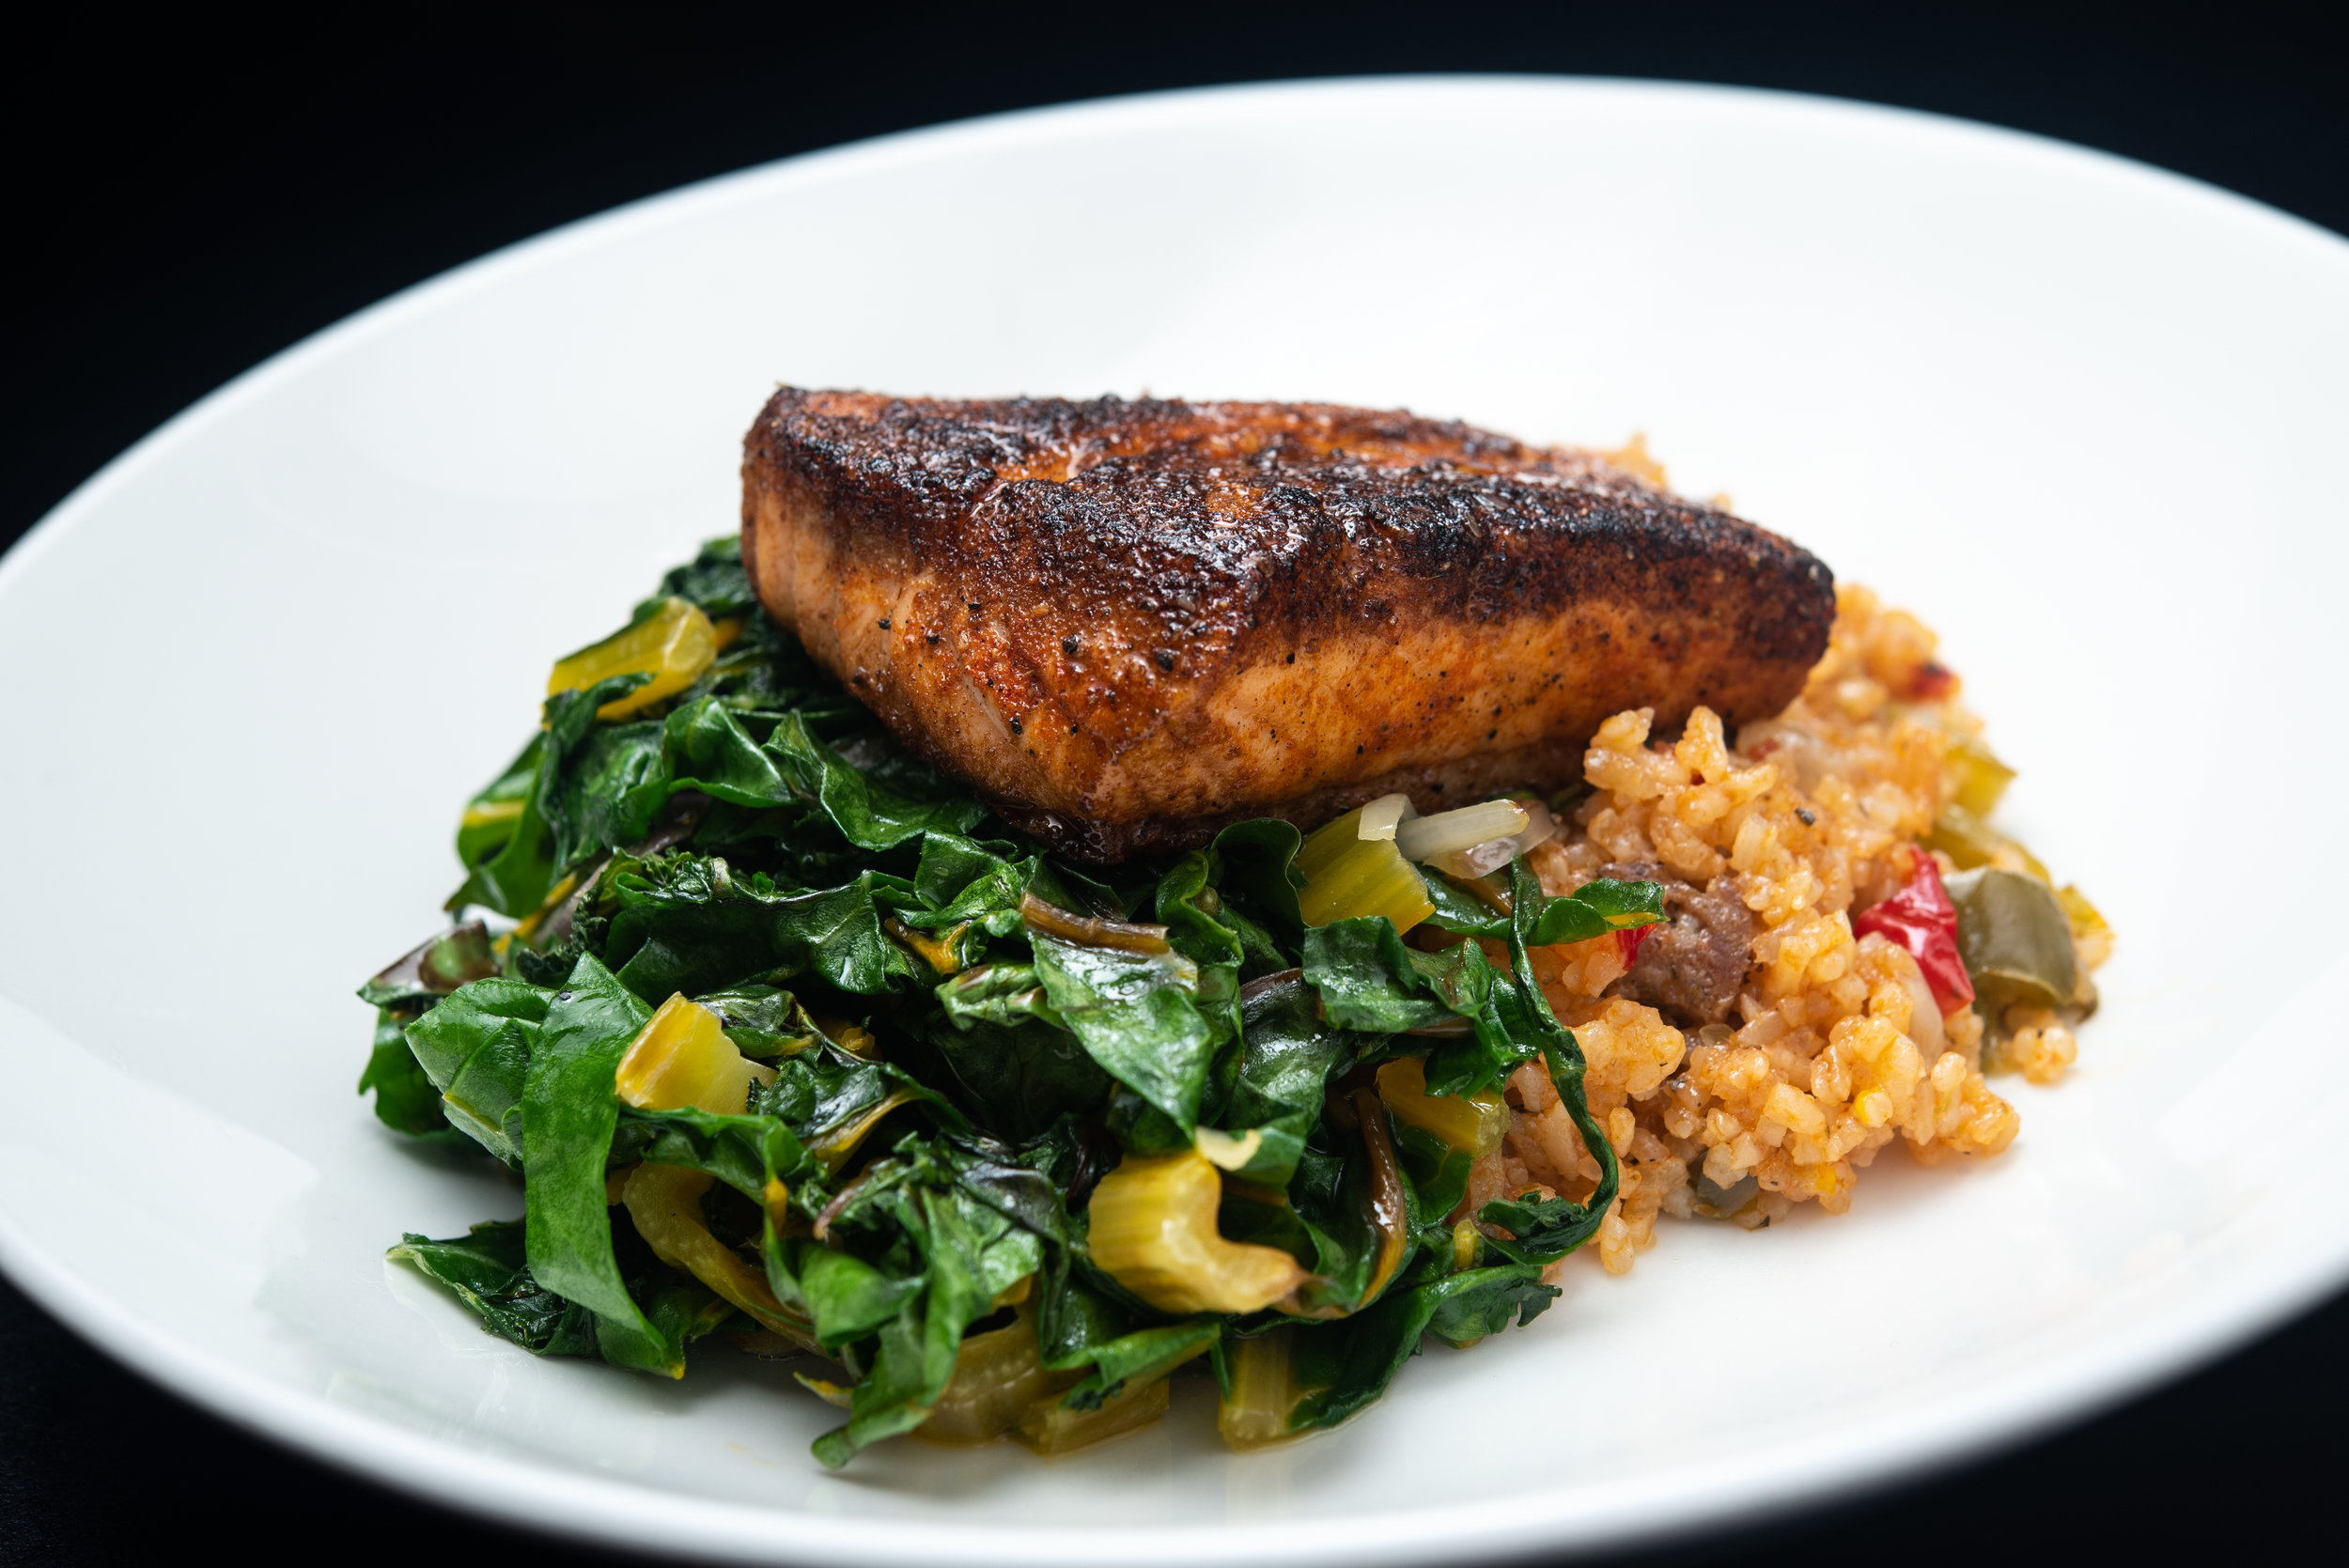 Blackened Salmon4.jpg